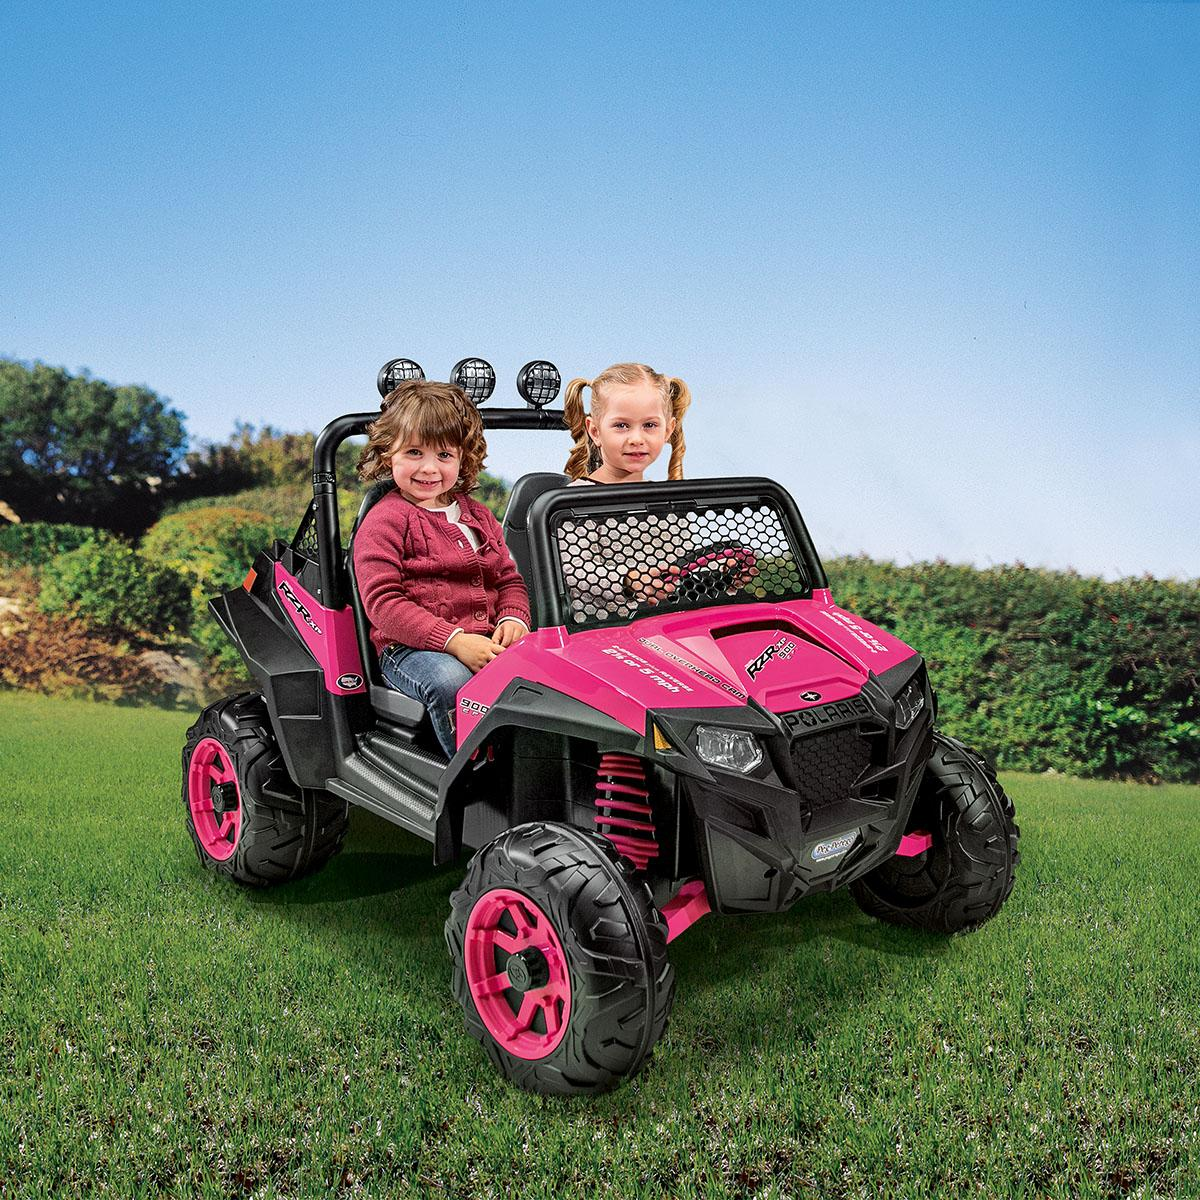 peg perego polaris rzr 900 ride on pink toys. Black Bedroom Furniture Sets. Home Design Ideas